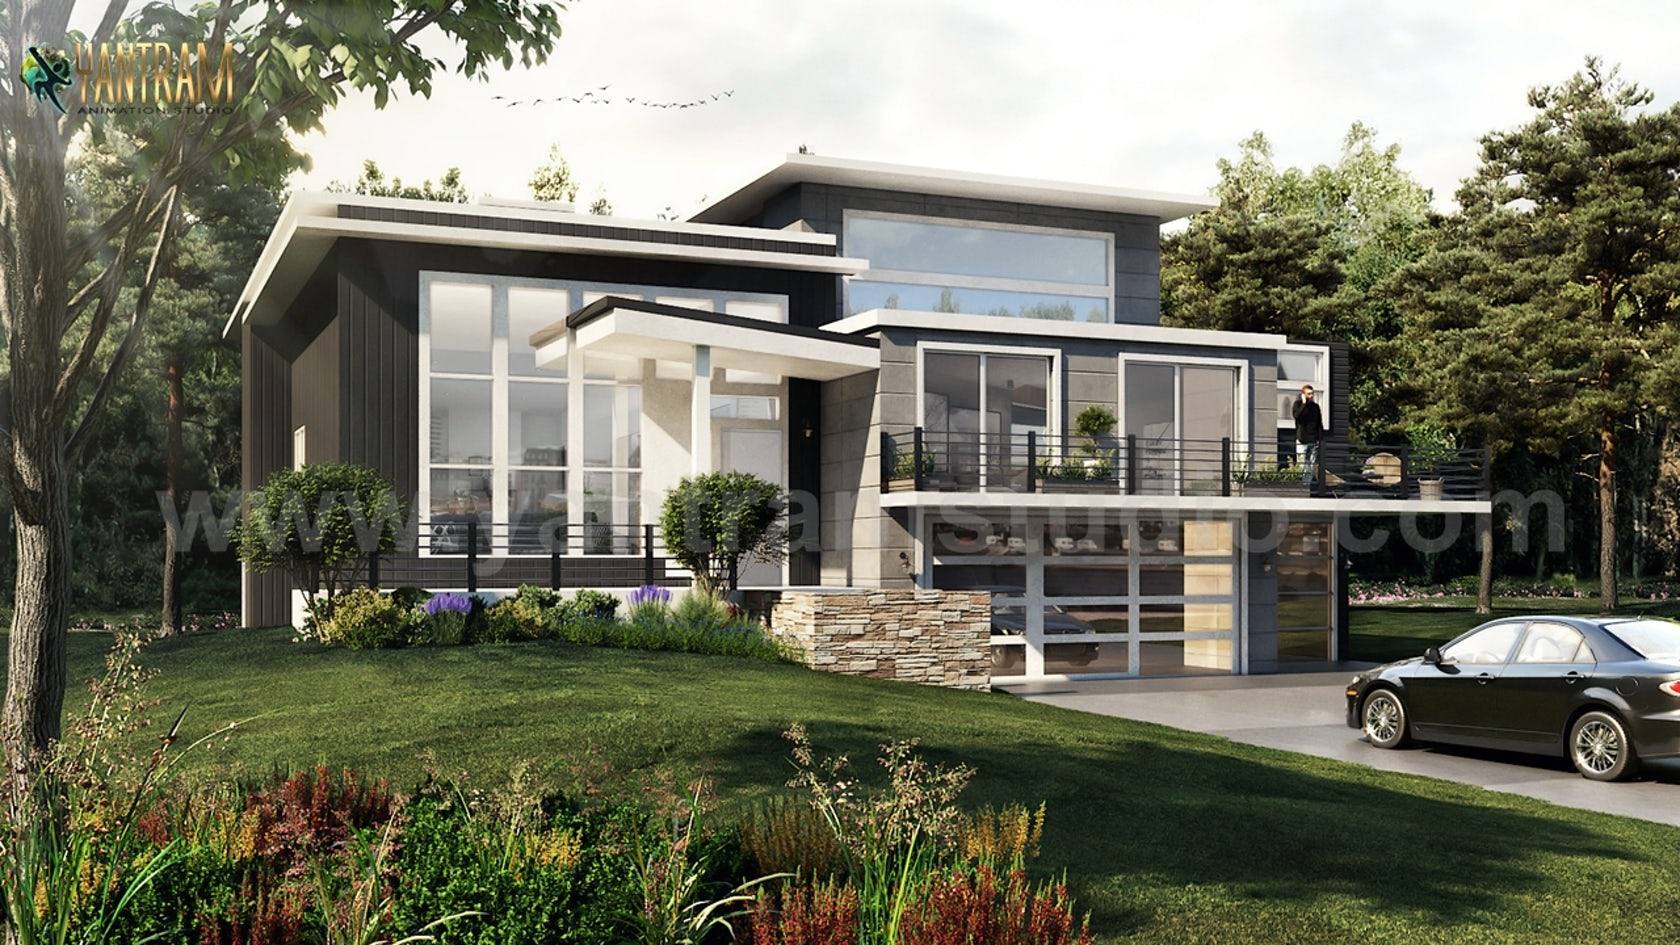 Modern Flat Roof Landscaping Exterior House Concept By Architectural Exterior Visualization Design Company Architizer